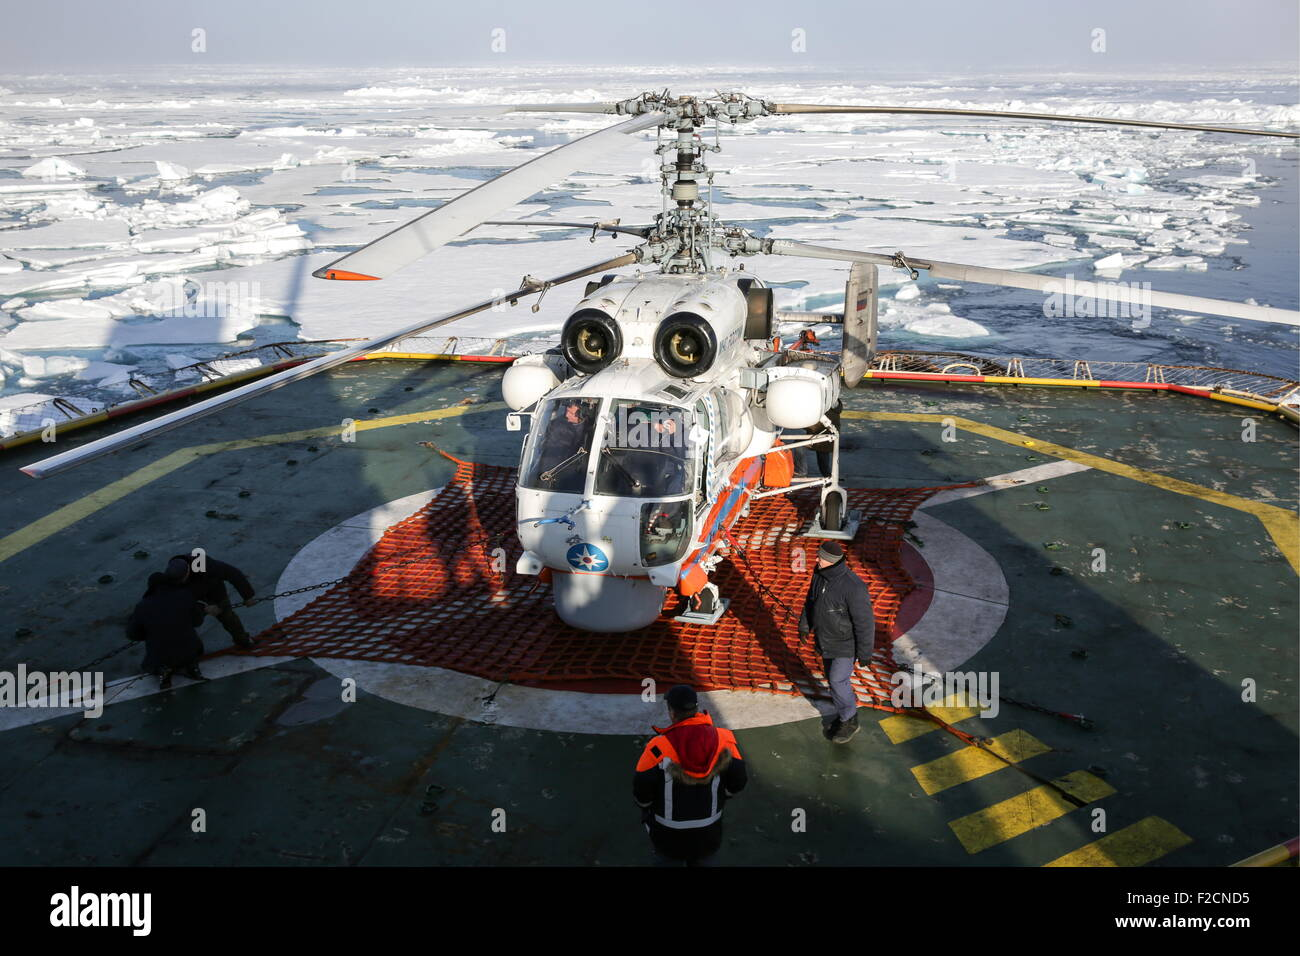 ARCTIC. AUGUST 11, 2015. A Ka-32 helicopter evacuating polar explorers of the Russian North Pole-2015 drifting ice - Stock Image